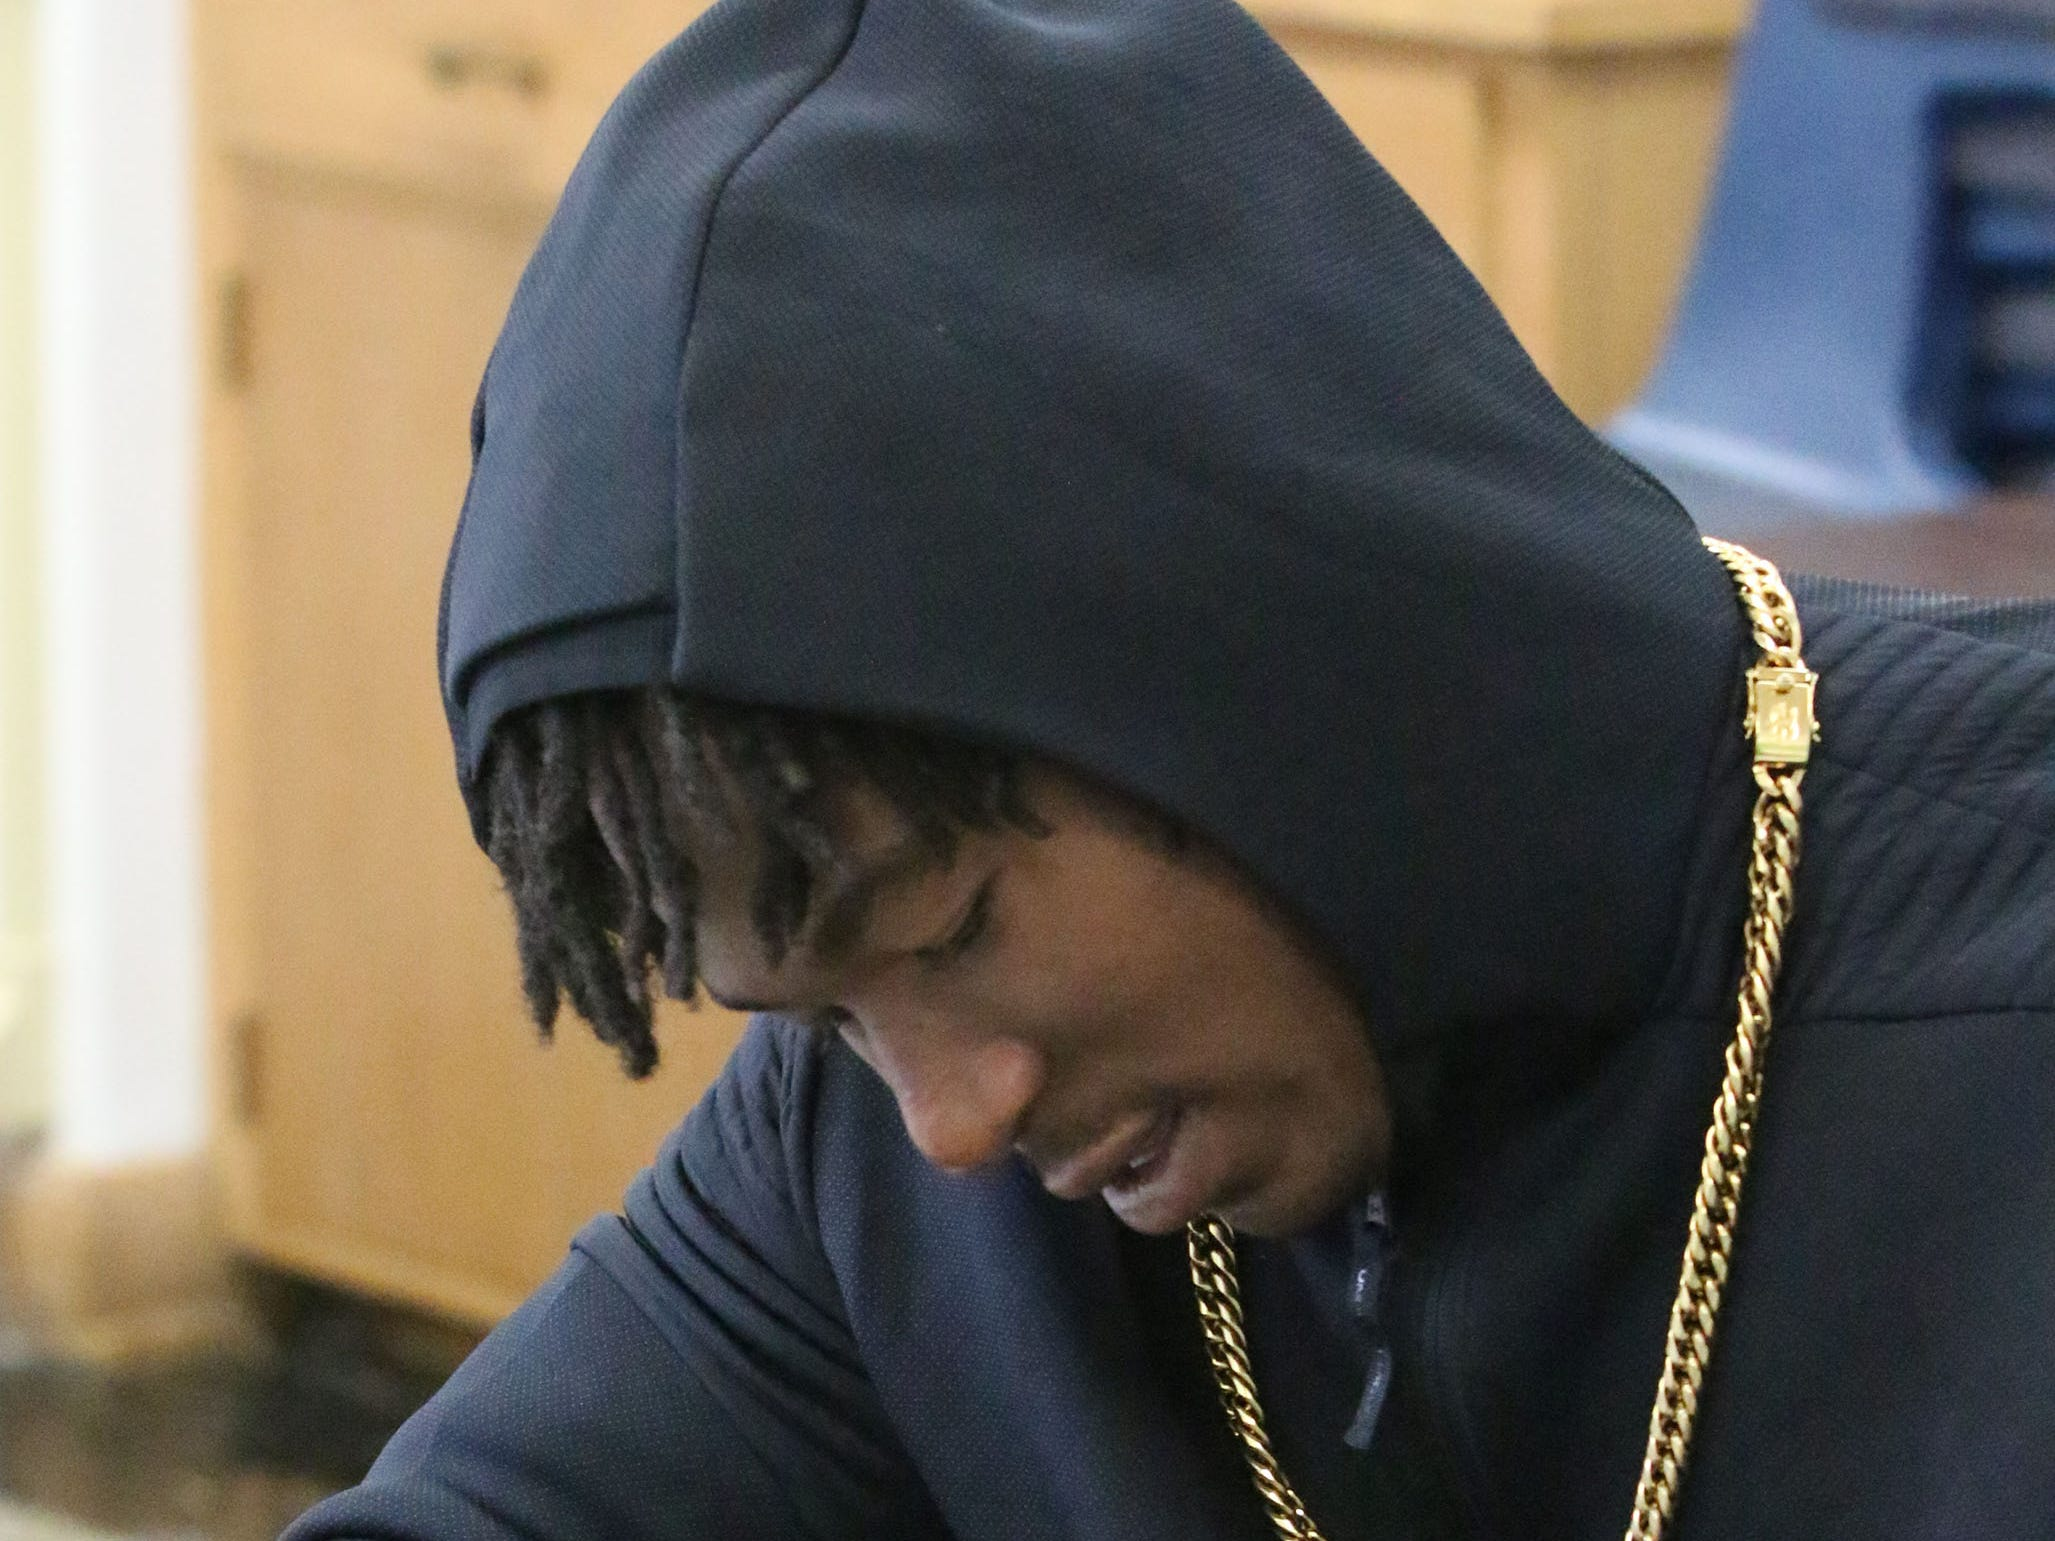 Green Bay Packer Jamaal Williams autographs photos of himself for students at St. John the Baptist Catholic School, Tuesday, November 6, 2018, in Plymouth, Wis.